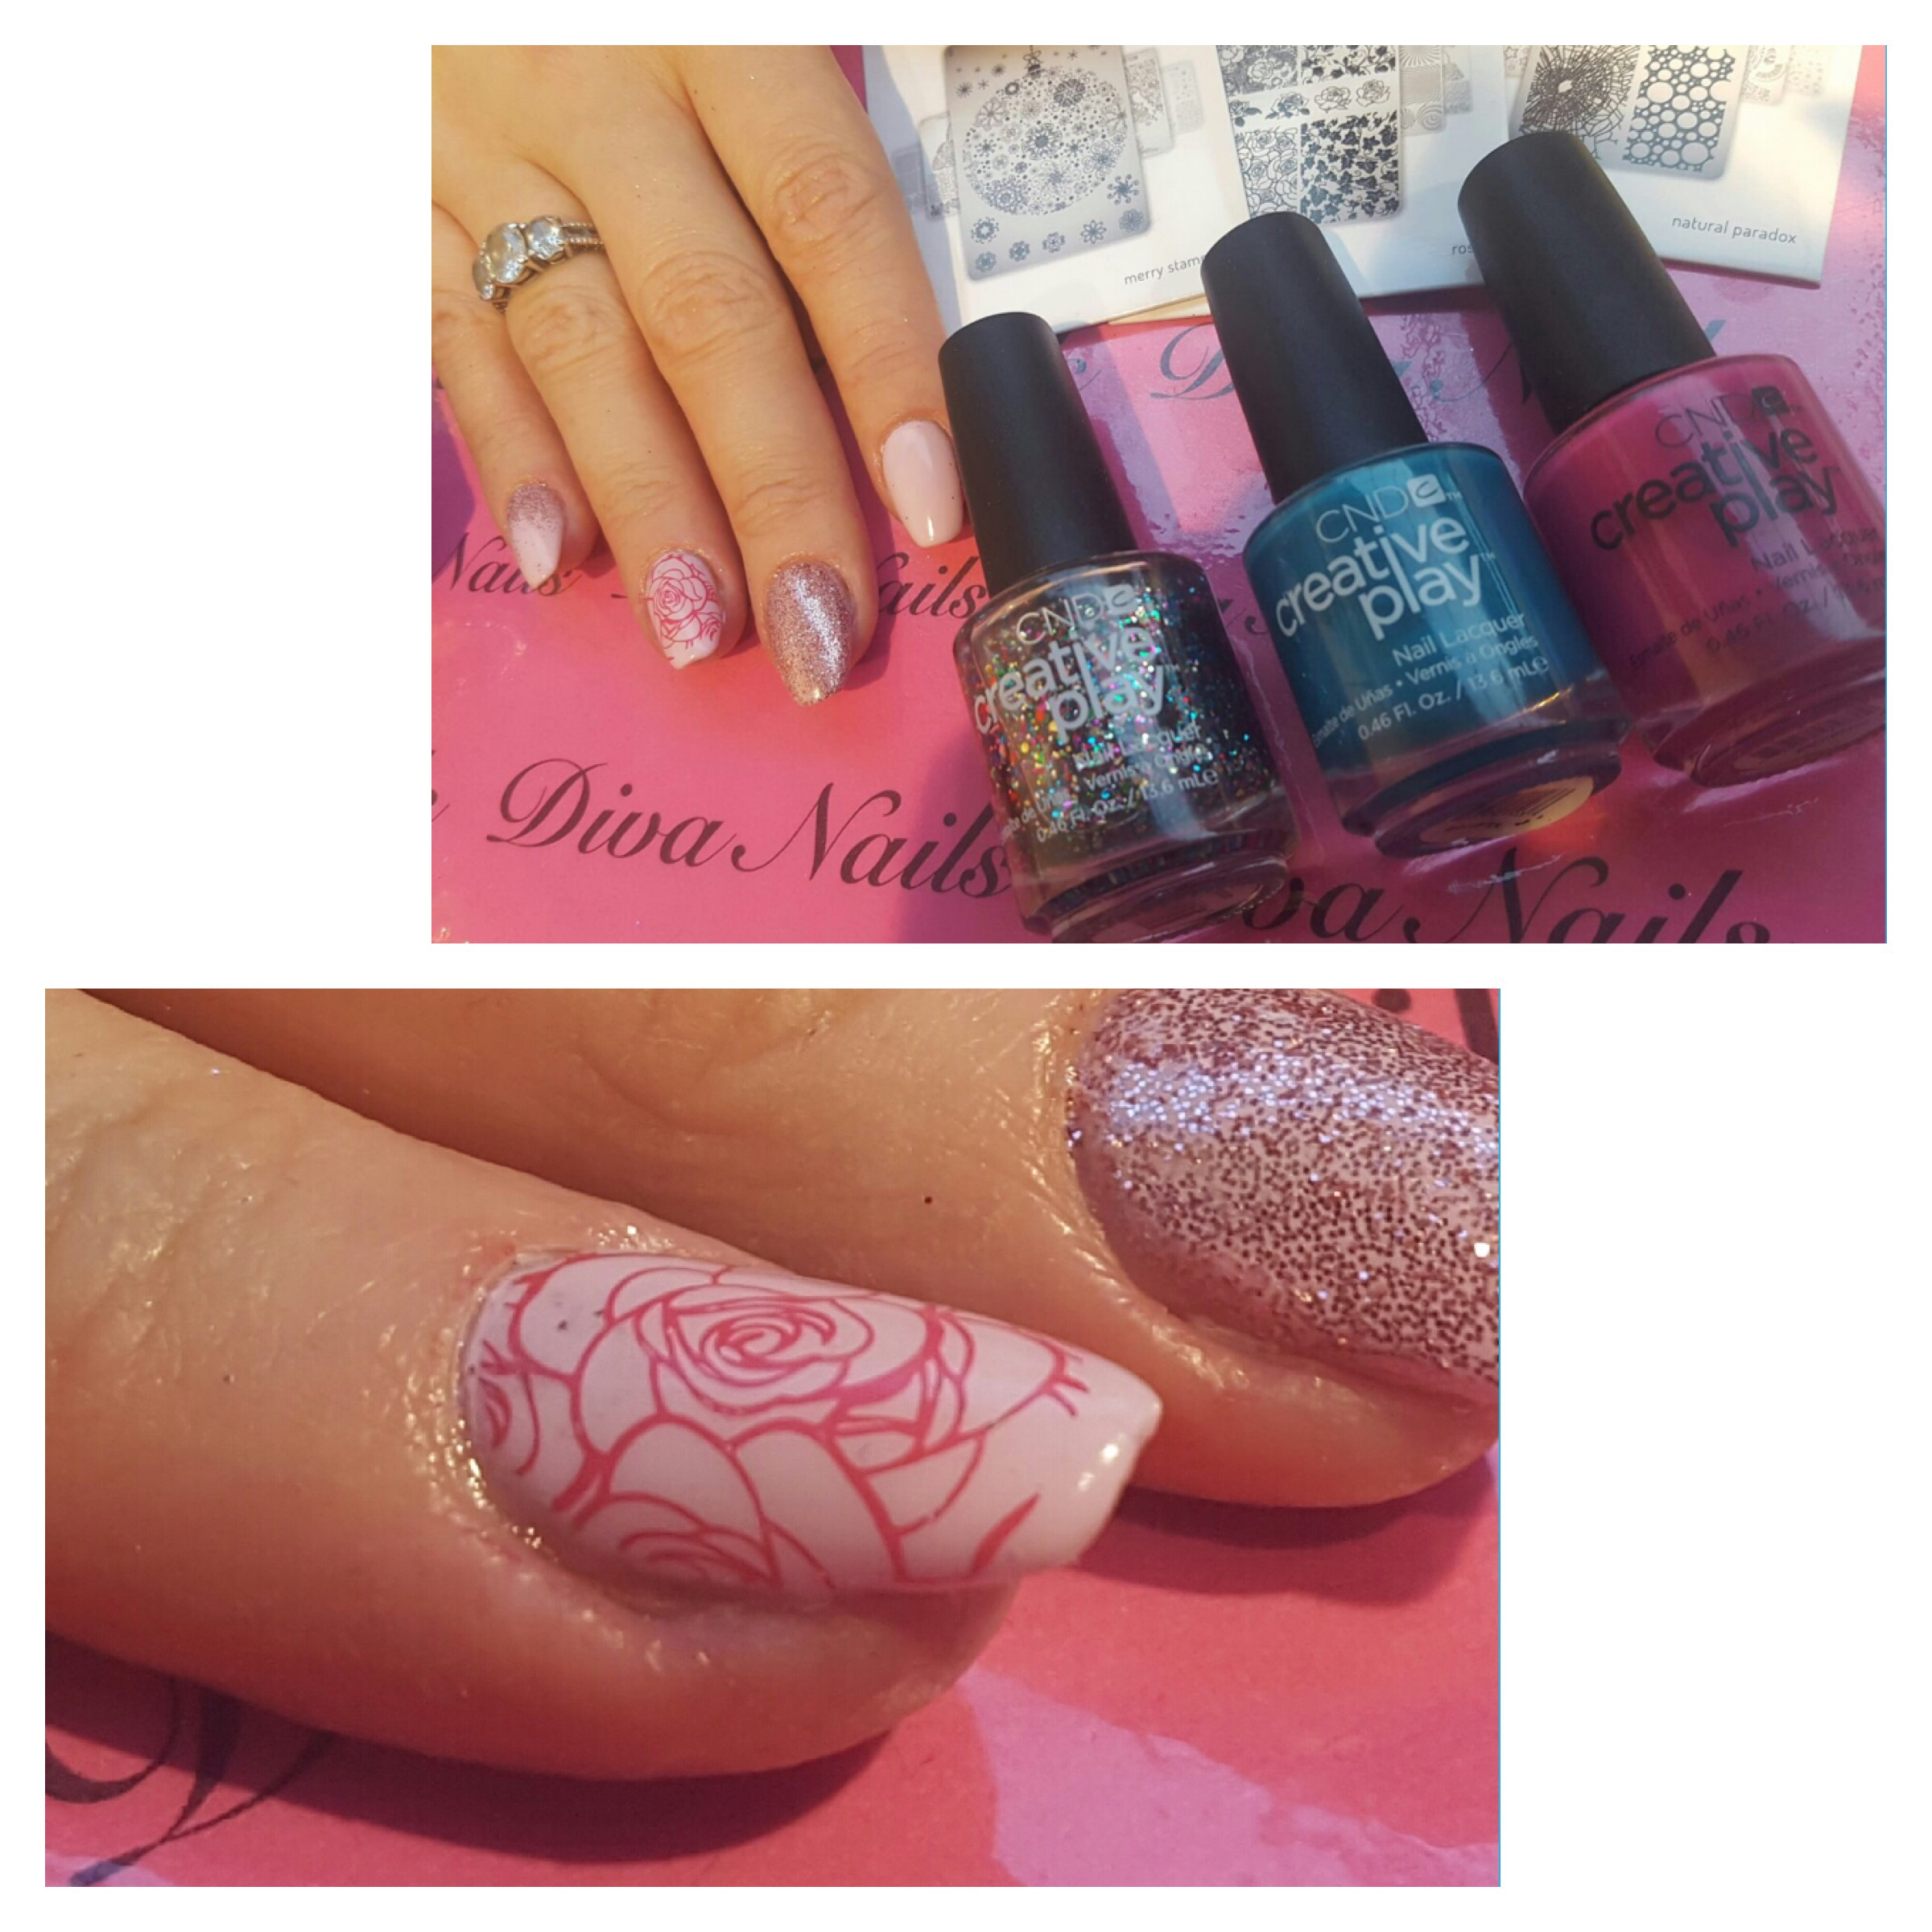 Diva nail bar special offers nail and beauty treatment offers diva nail bar nail salon the - Diva nails and beauty ...